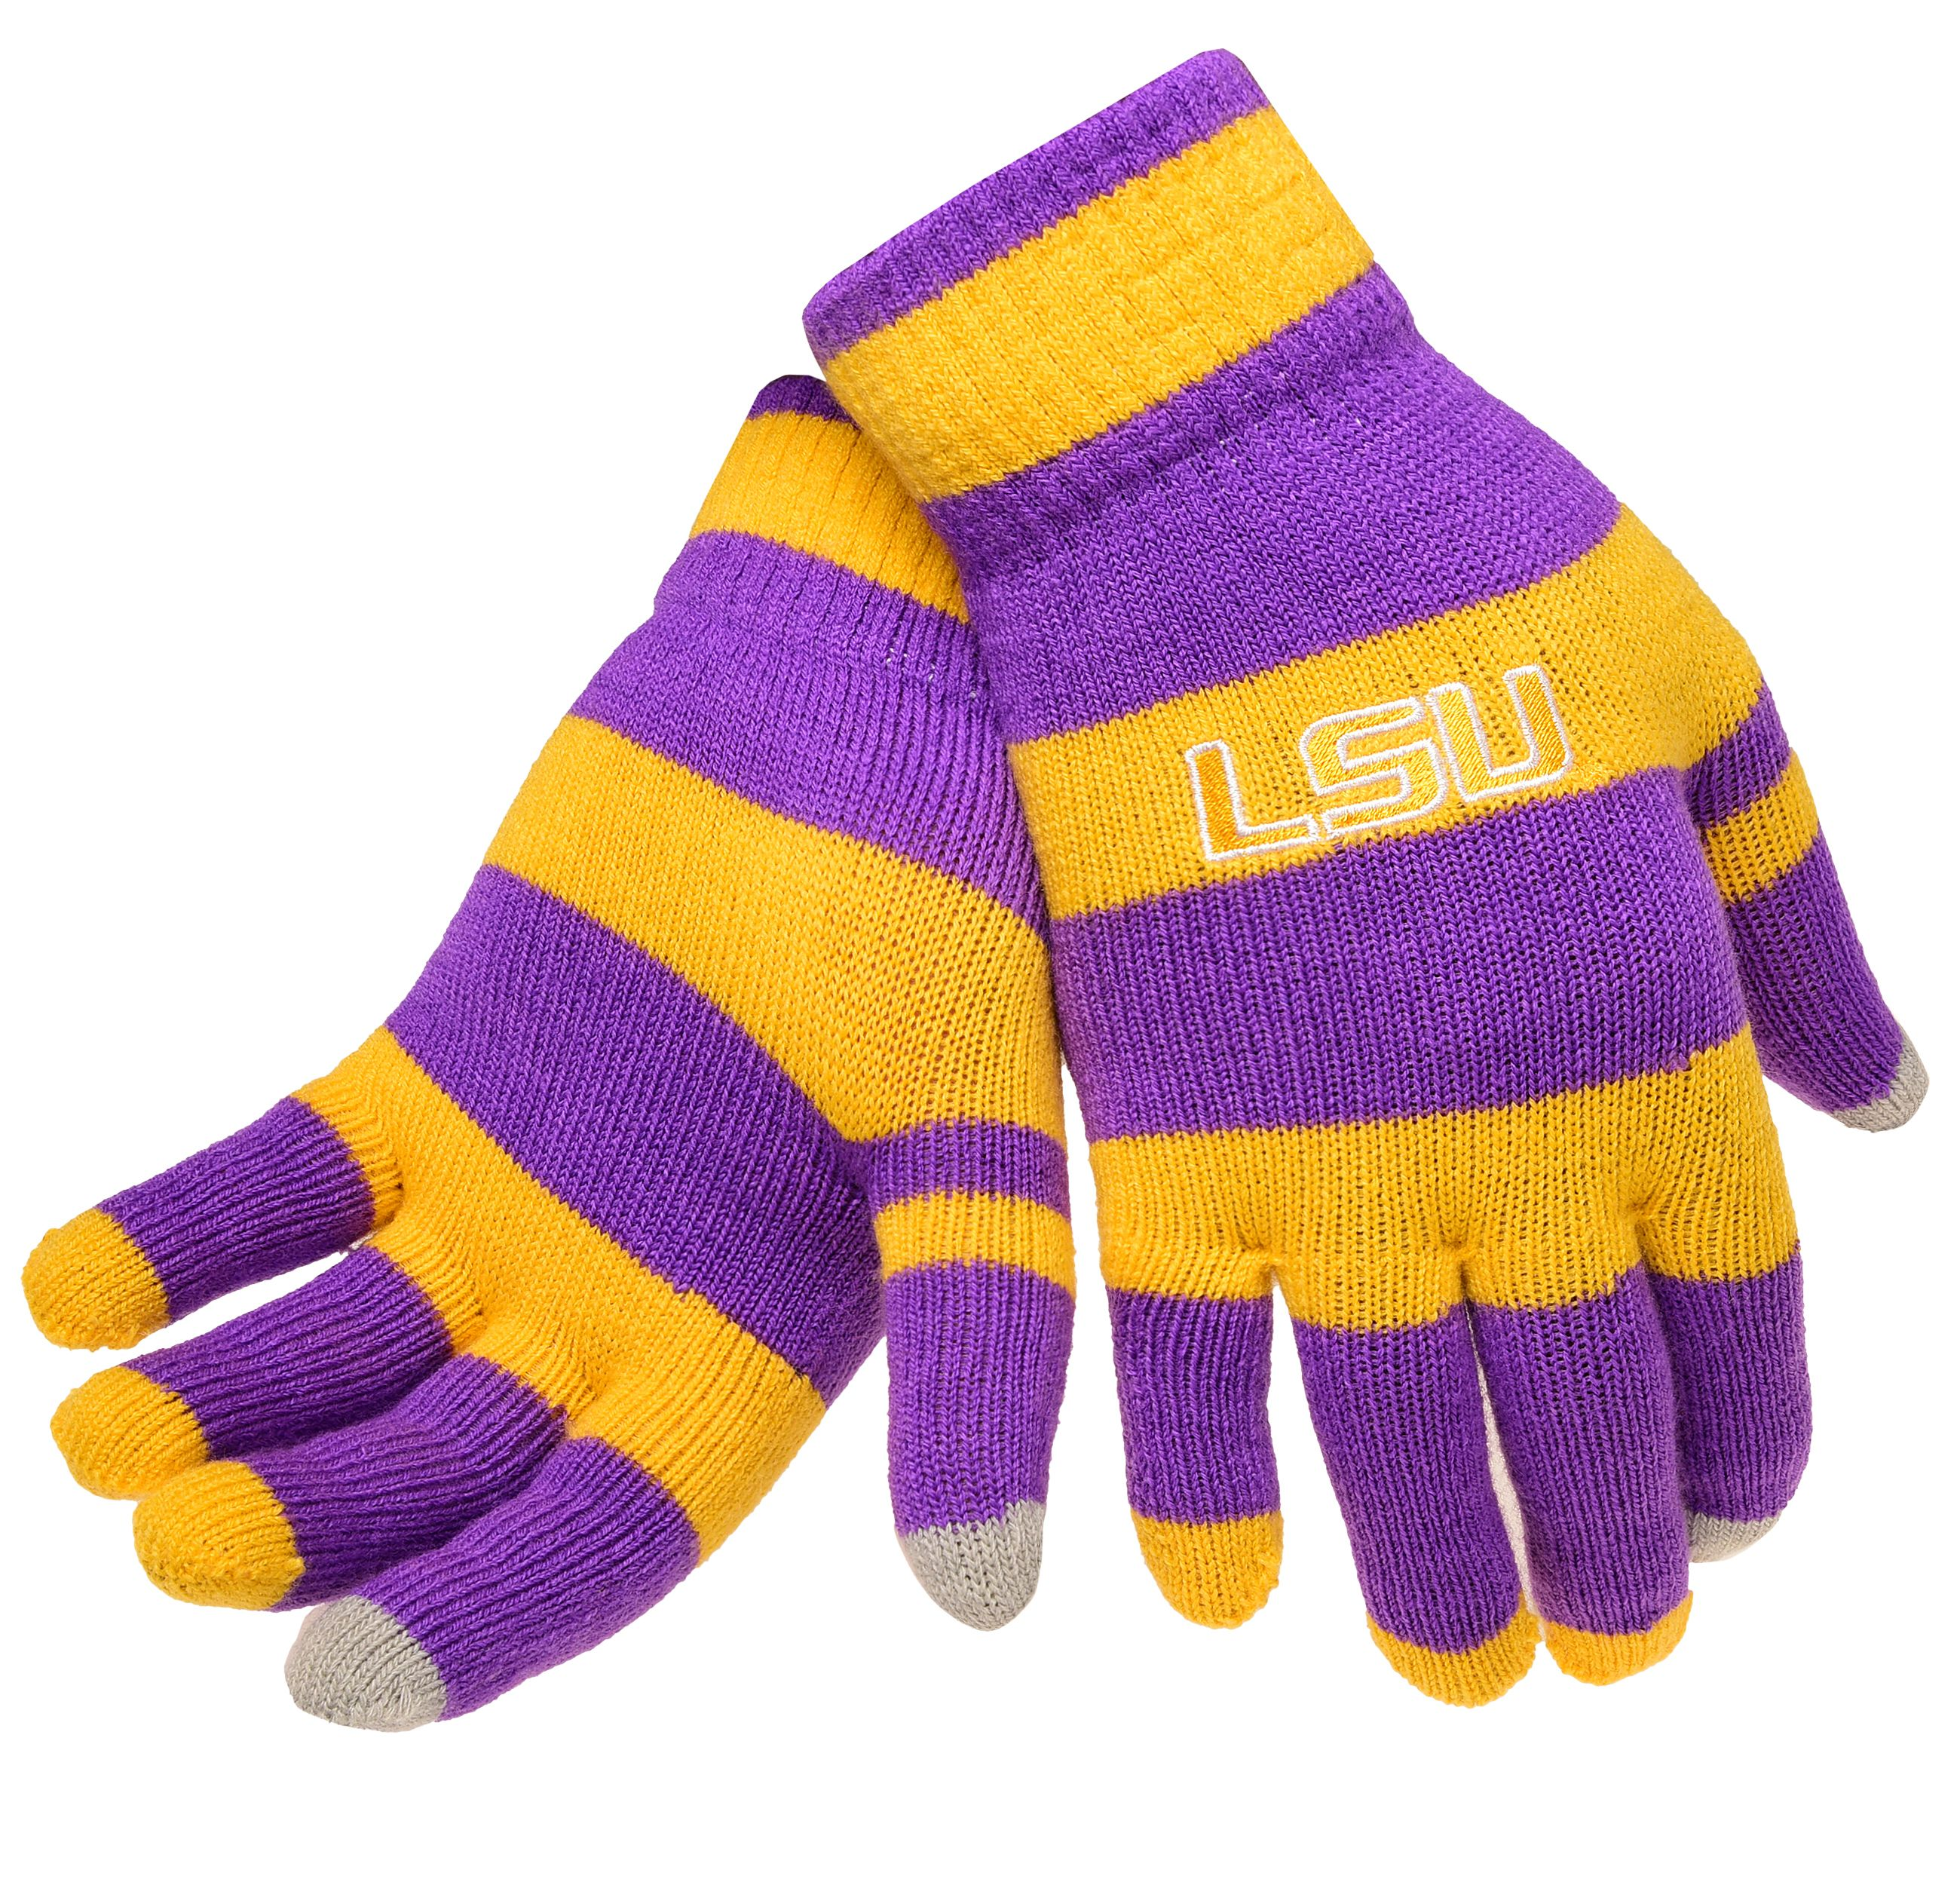 Lsu Tigers Official NCAA Glove Stripe Outdoor Winter Stretch Knit by Forever Collectibles 594154 by Forever Collectibles